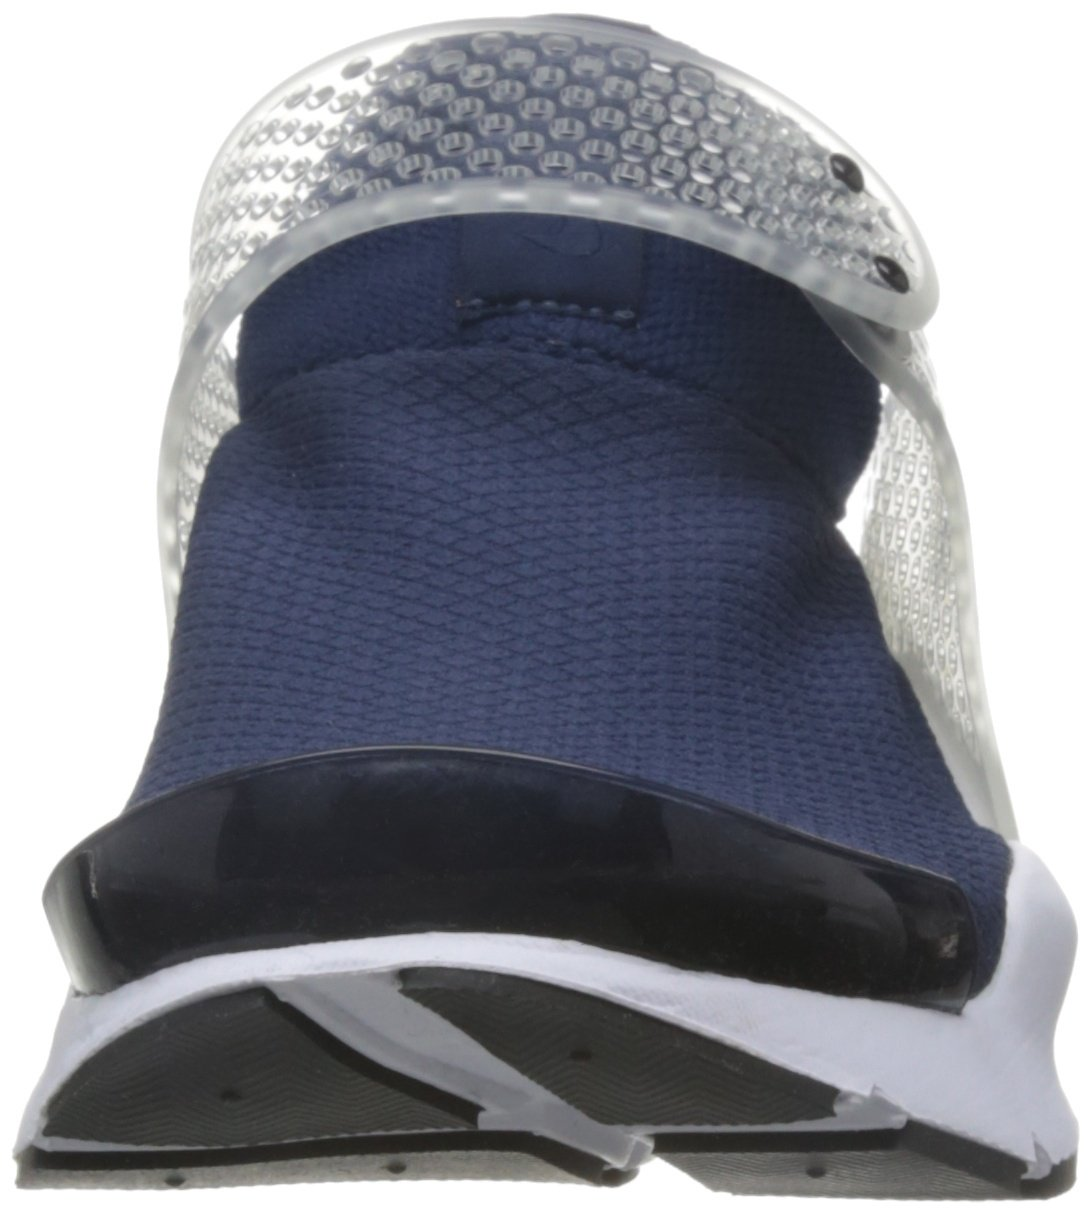 NIKE Womens Sock Dart Running Shoes-Navy Blue-6